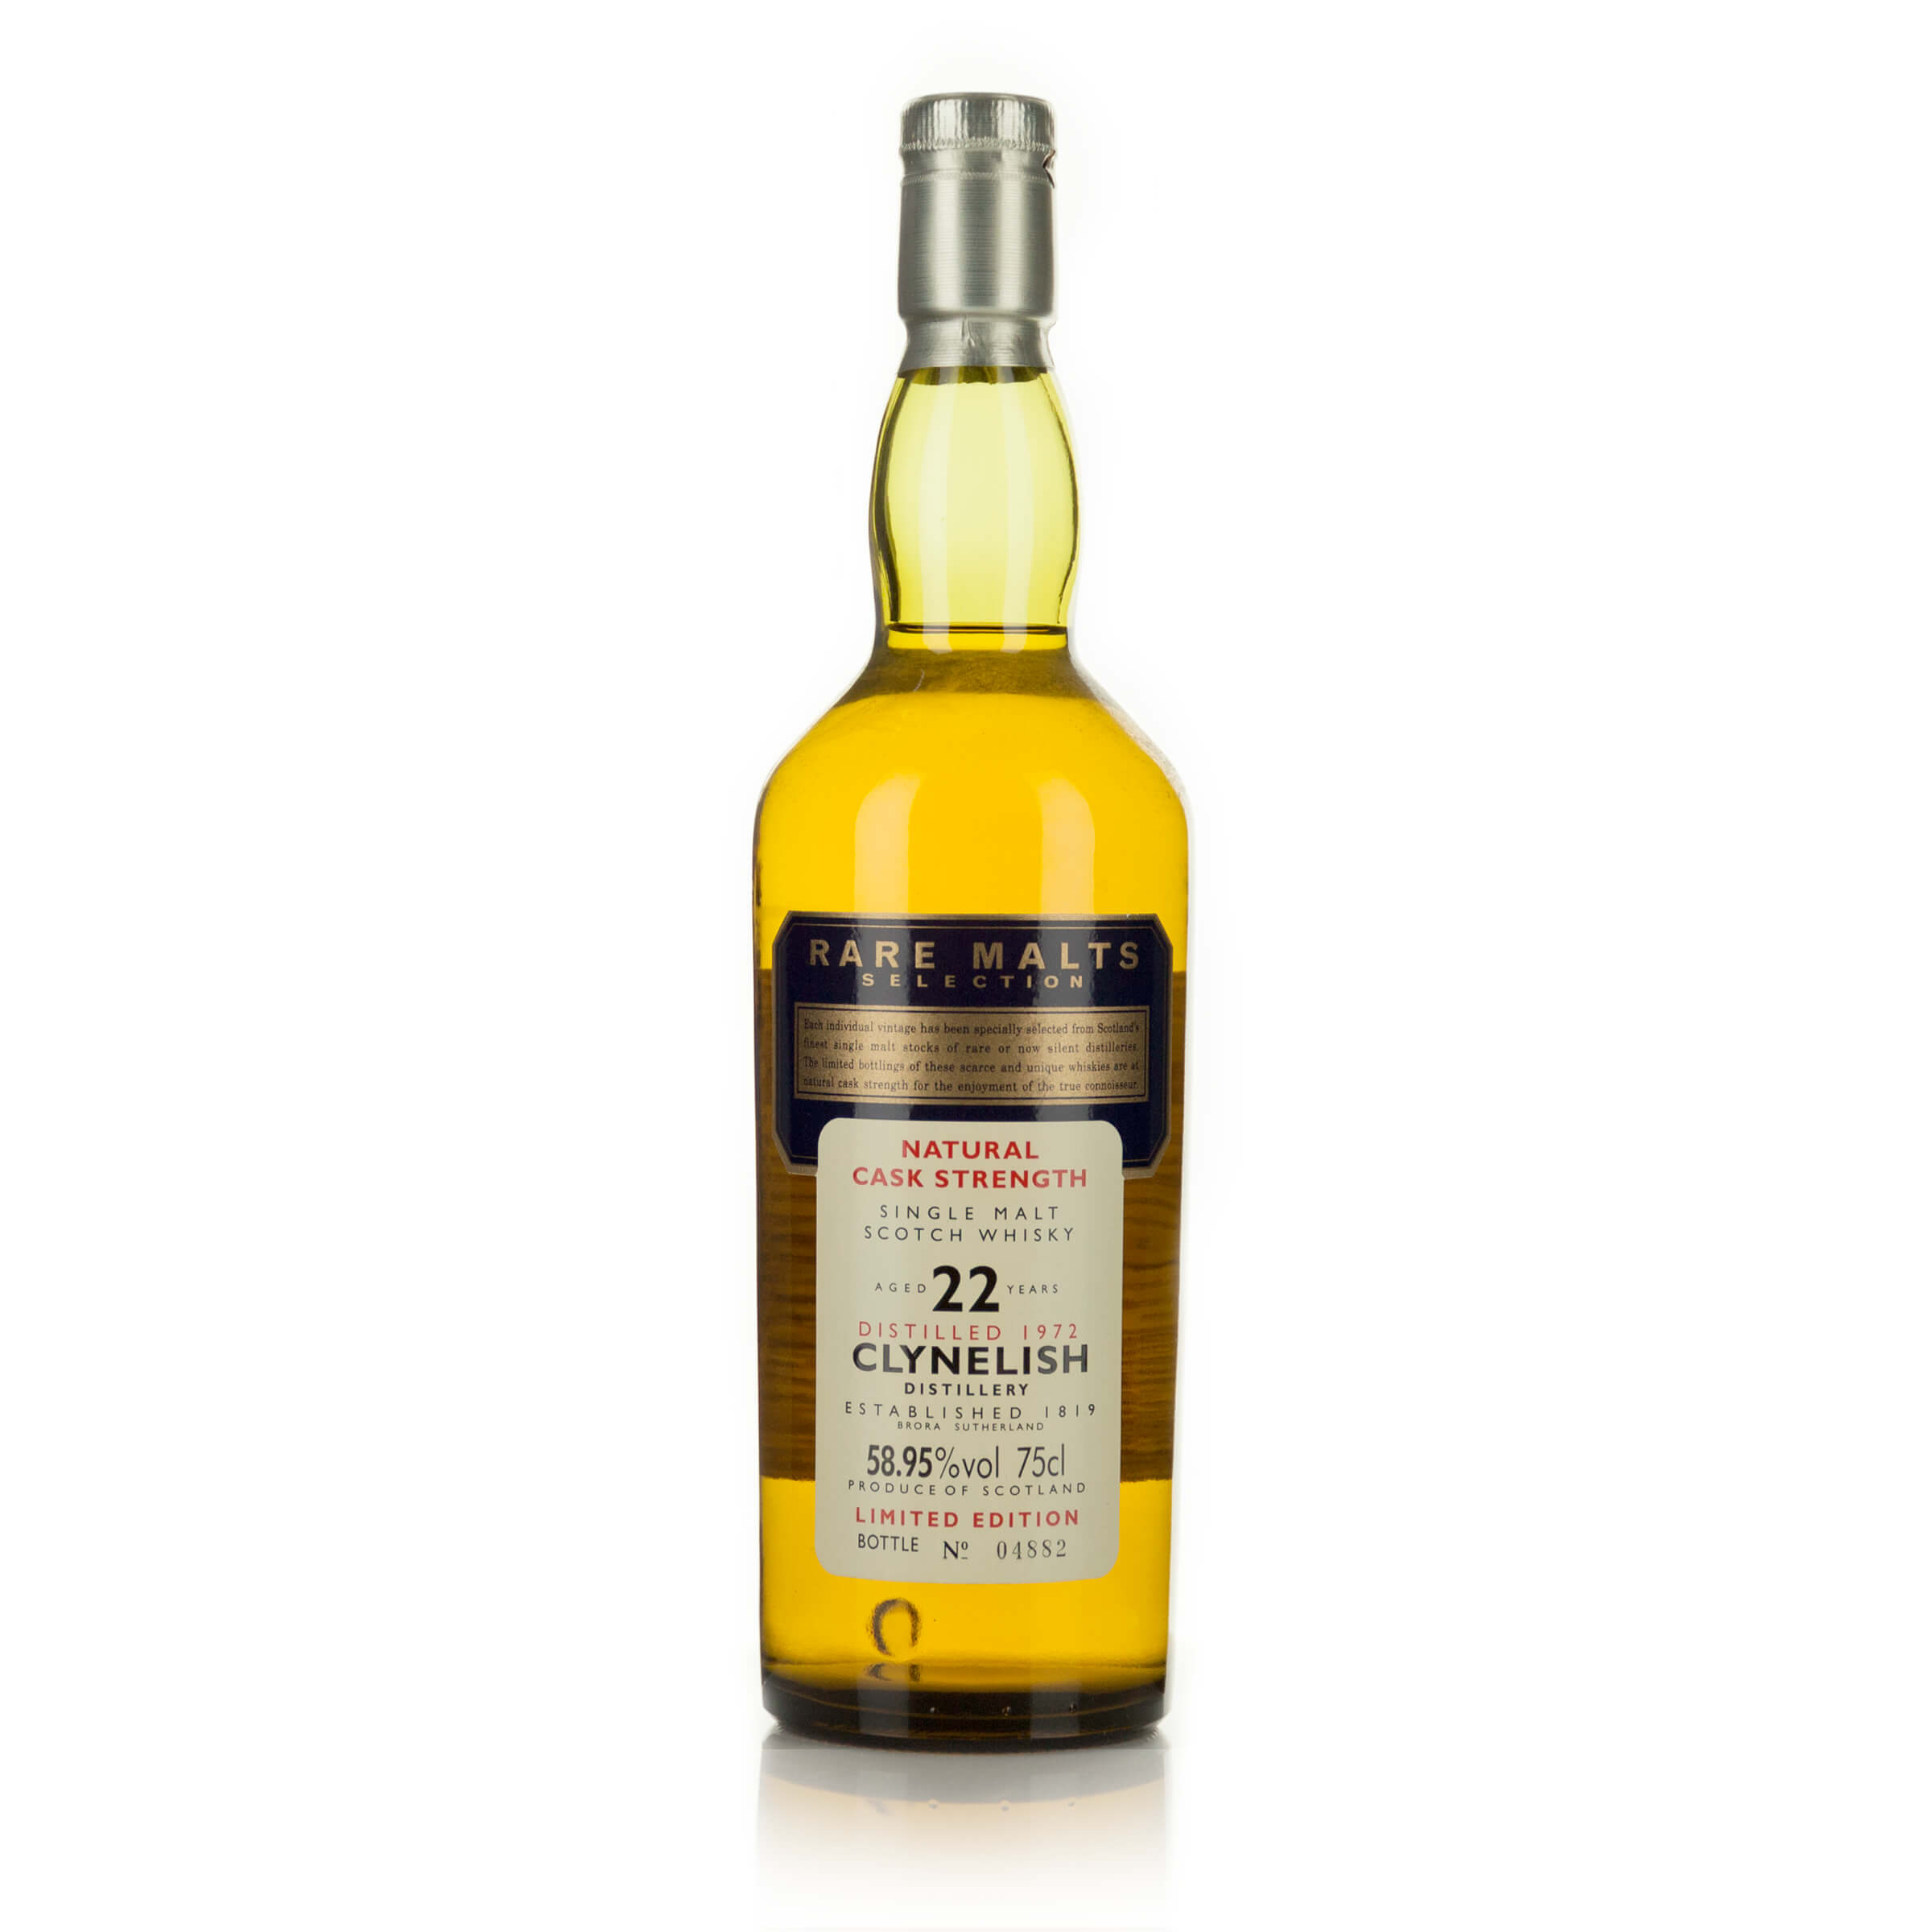 CLYNELISH SINGLE MALT SCOTCH WHISKY 22 YEARS (ONE 75 CL)